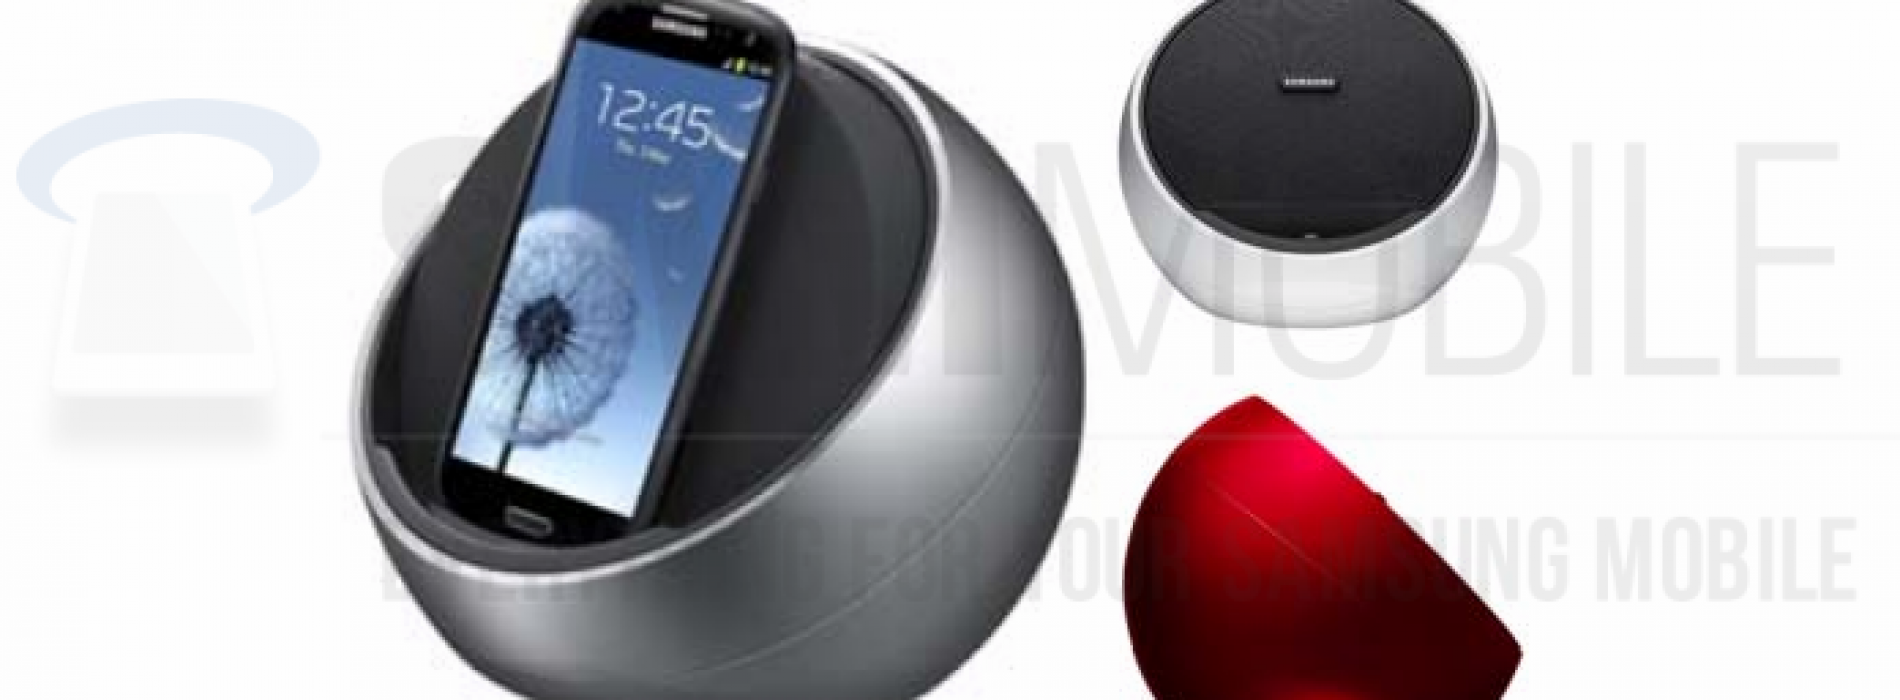 Samsung readying new audio docking station, rumor suggests